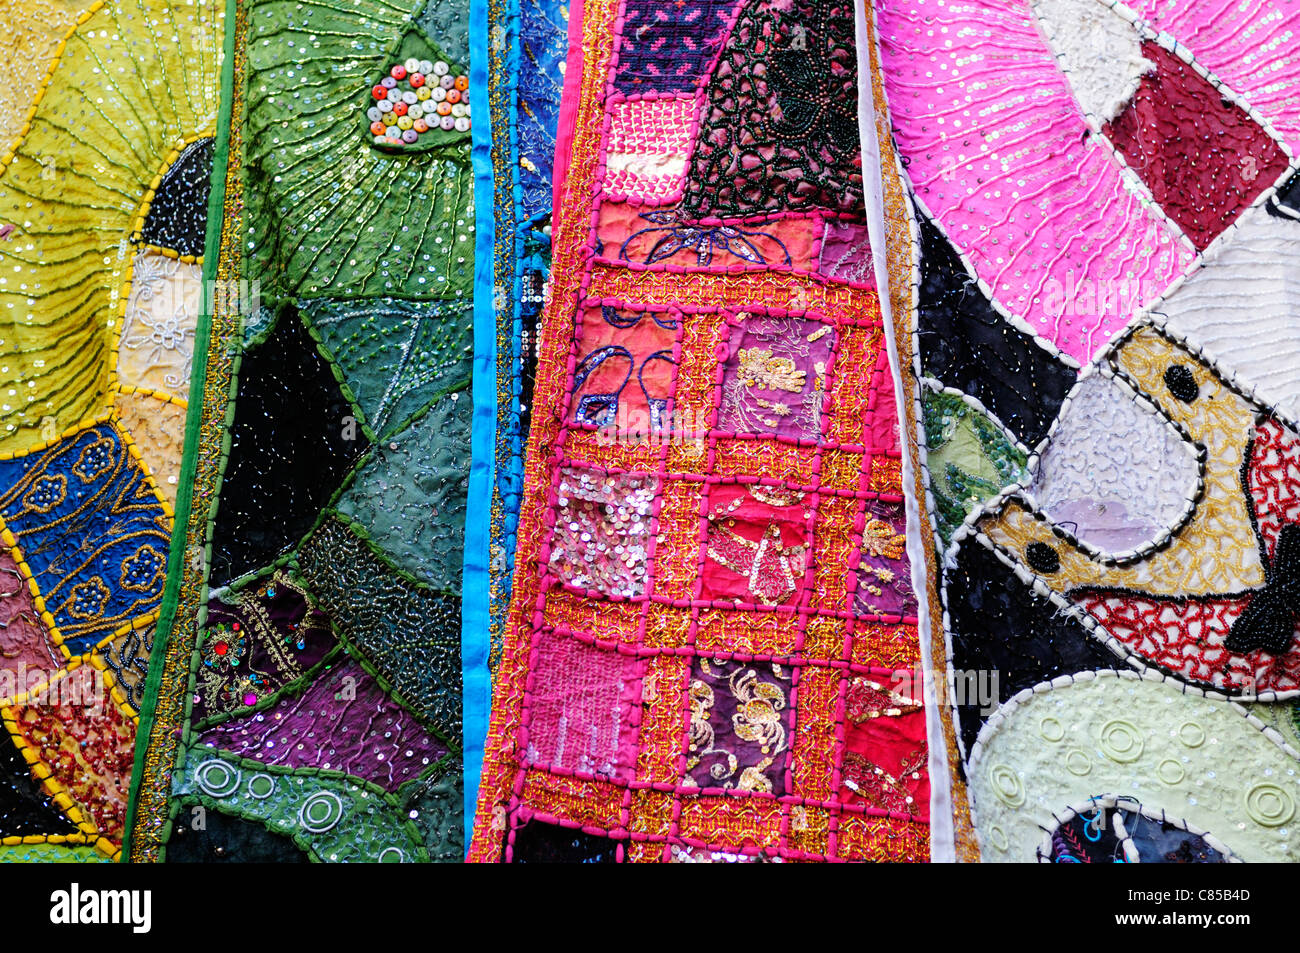 Textiles for sale in The Souq, Marrakech, Morocco - Stock Image